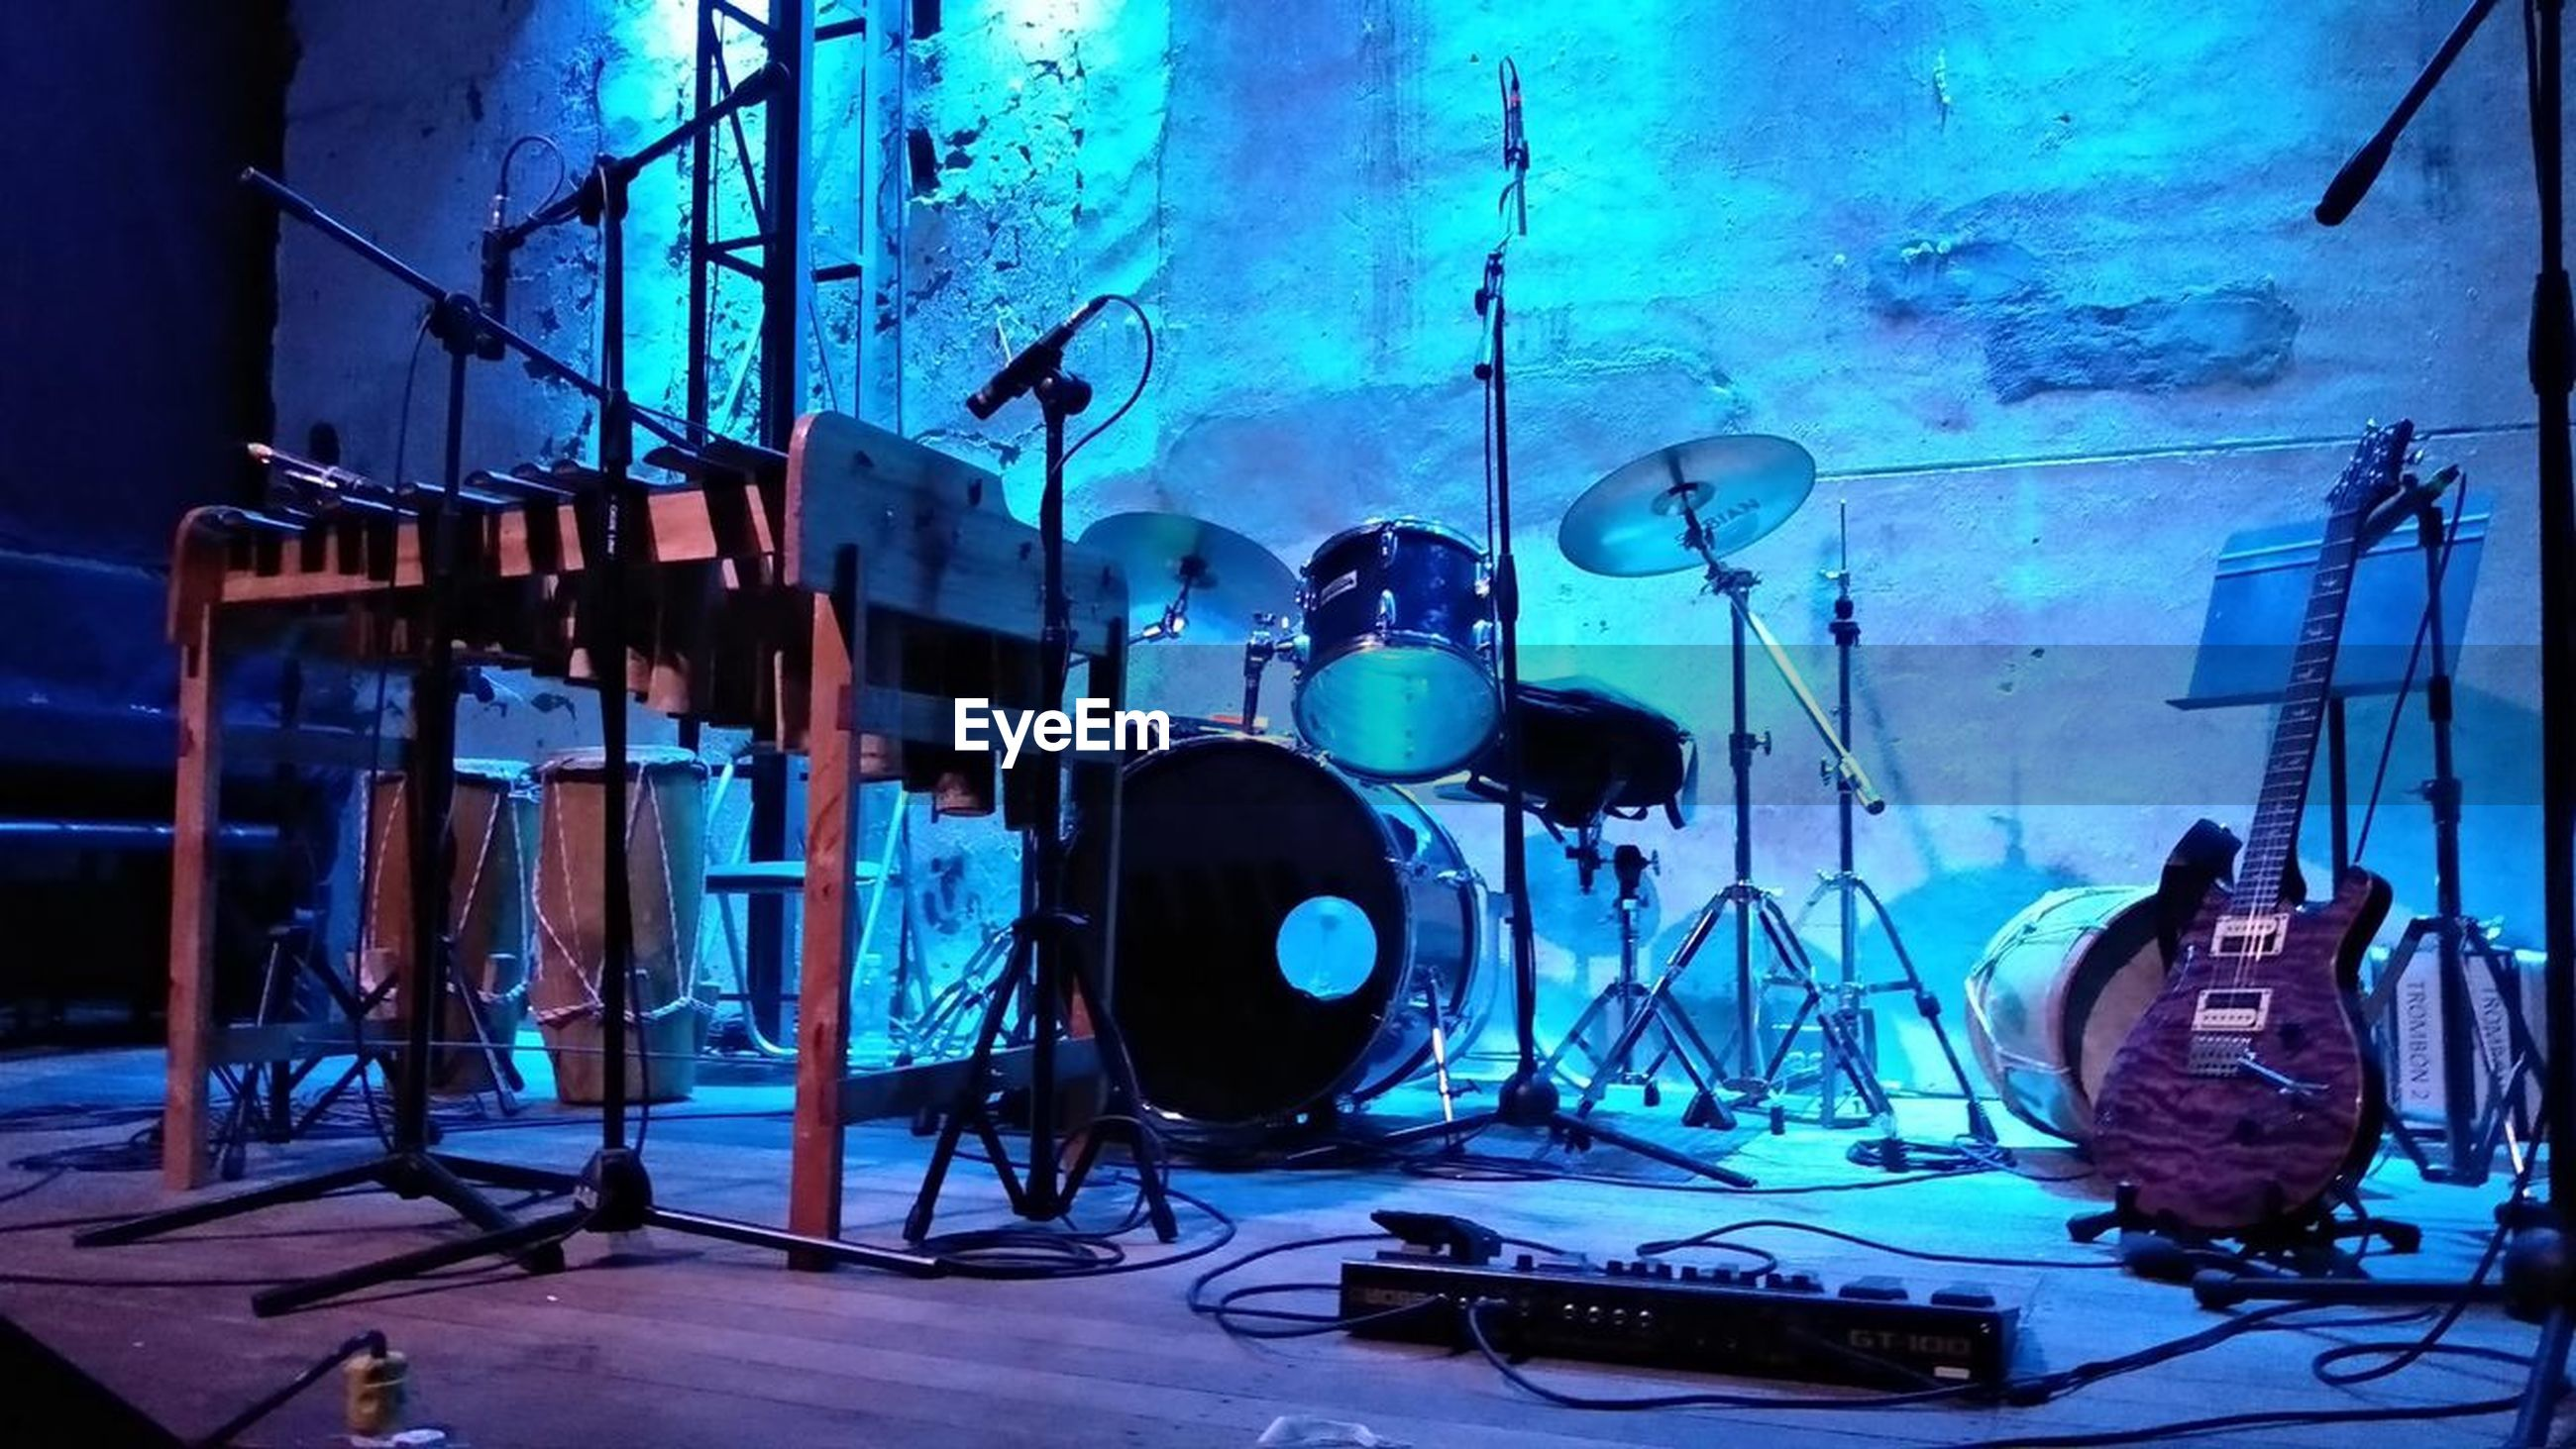 music, musical instrument, arts culture and entertainment, musical equipment, indoors, string instrument, microphone, input device, guitar, no people, drum kit, blue, drum, audio equipment, equipment, performance, stage, rock music, drum - percussion instrument, stage - performance space, nightlife